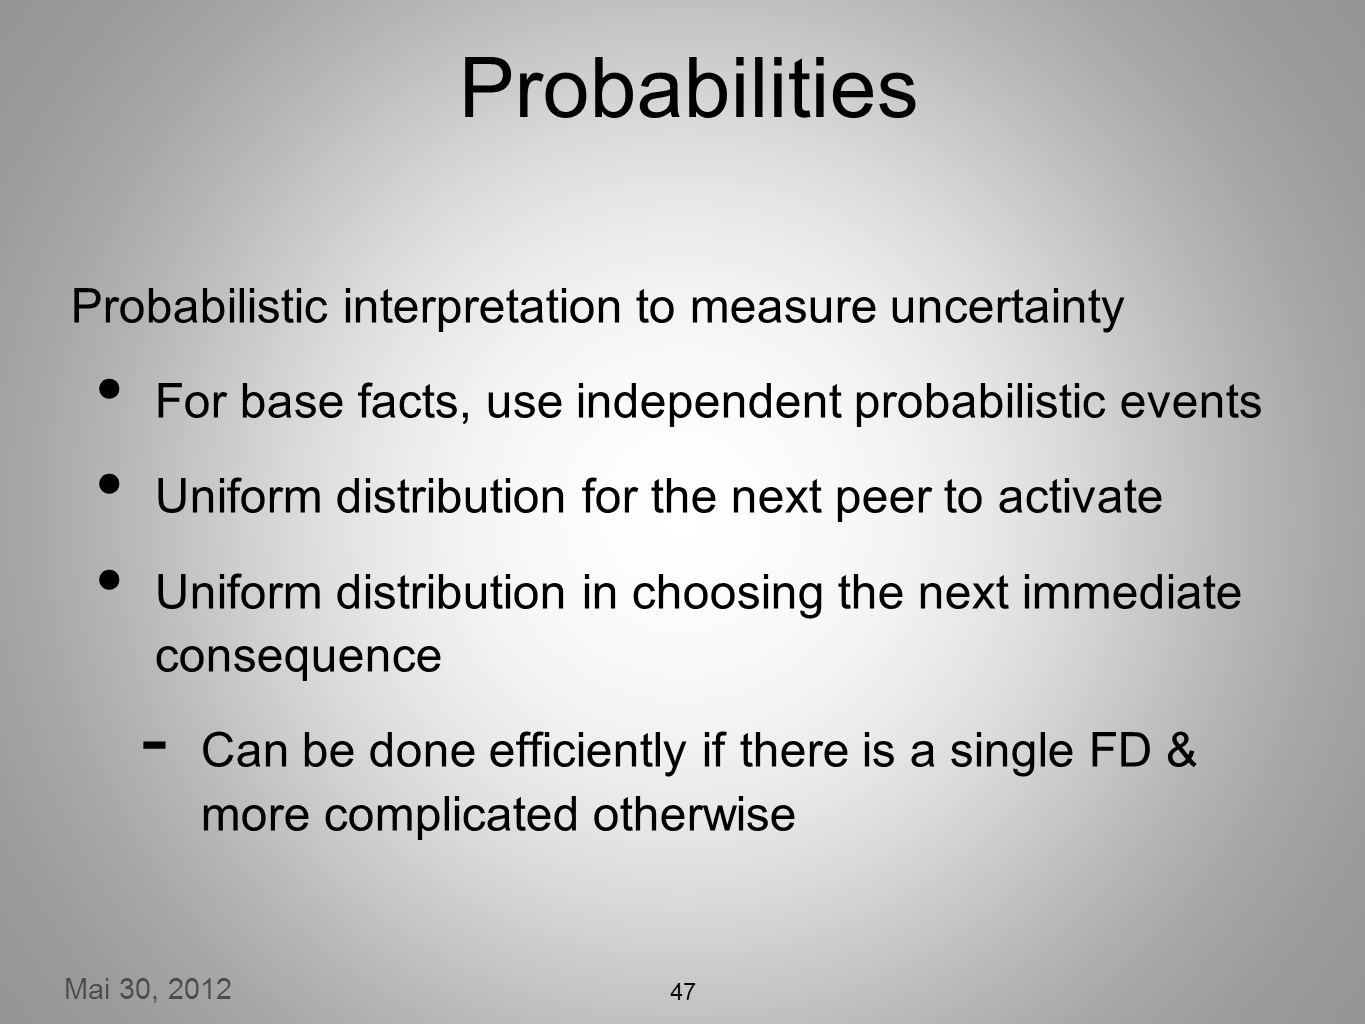 Mai 30, 2012 Probabilities Probabilistic interpretation to measure uncertainty For base facts, use independent probabilistic events Uniform distribution for the next peer to activate Uniform distribution in choosing the next immediate consequence Can be done efficiently if there is a single FD & more complicated otherwise 47